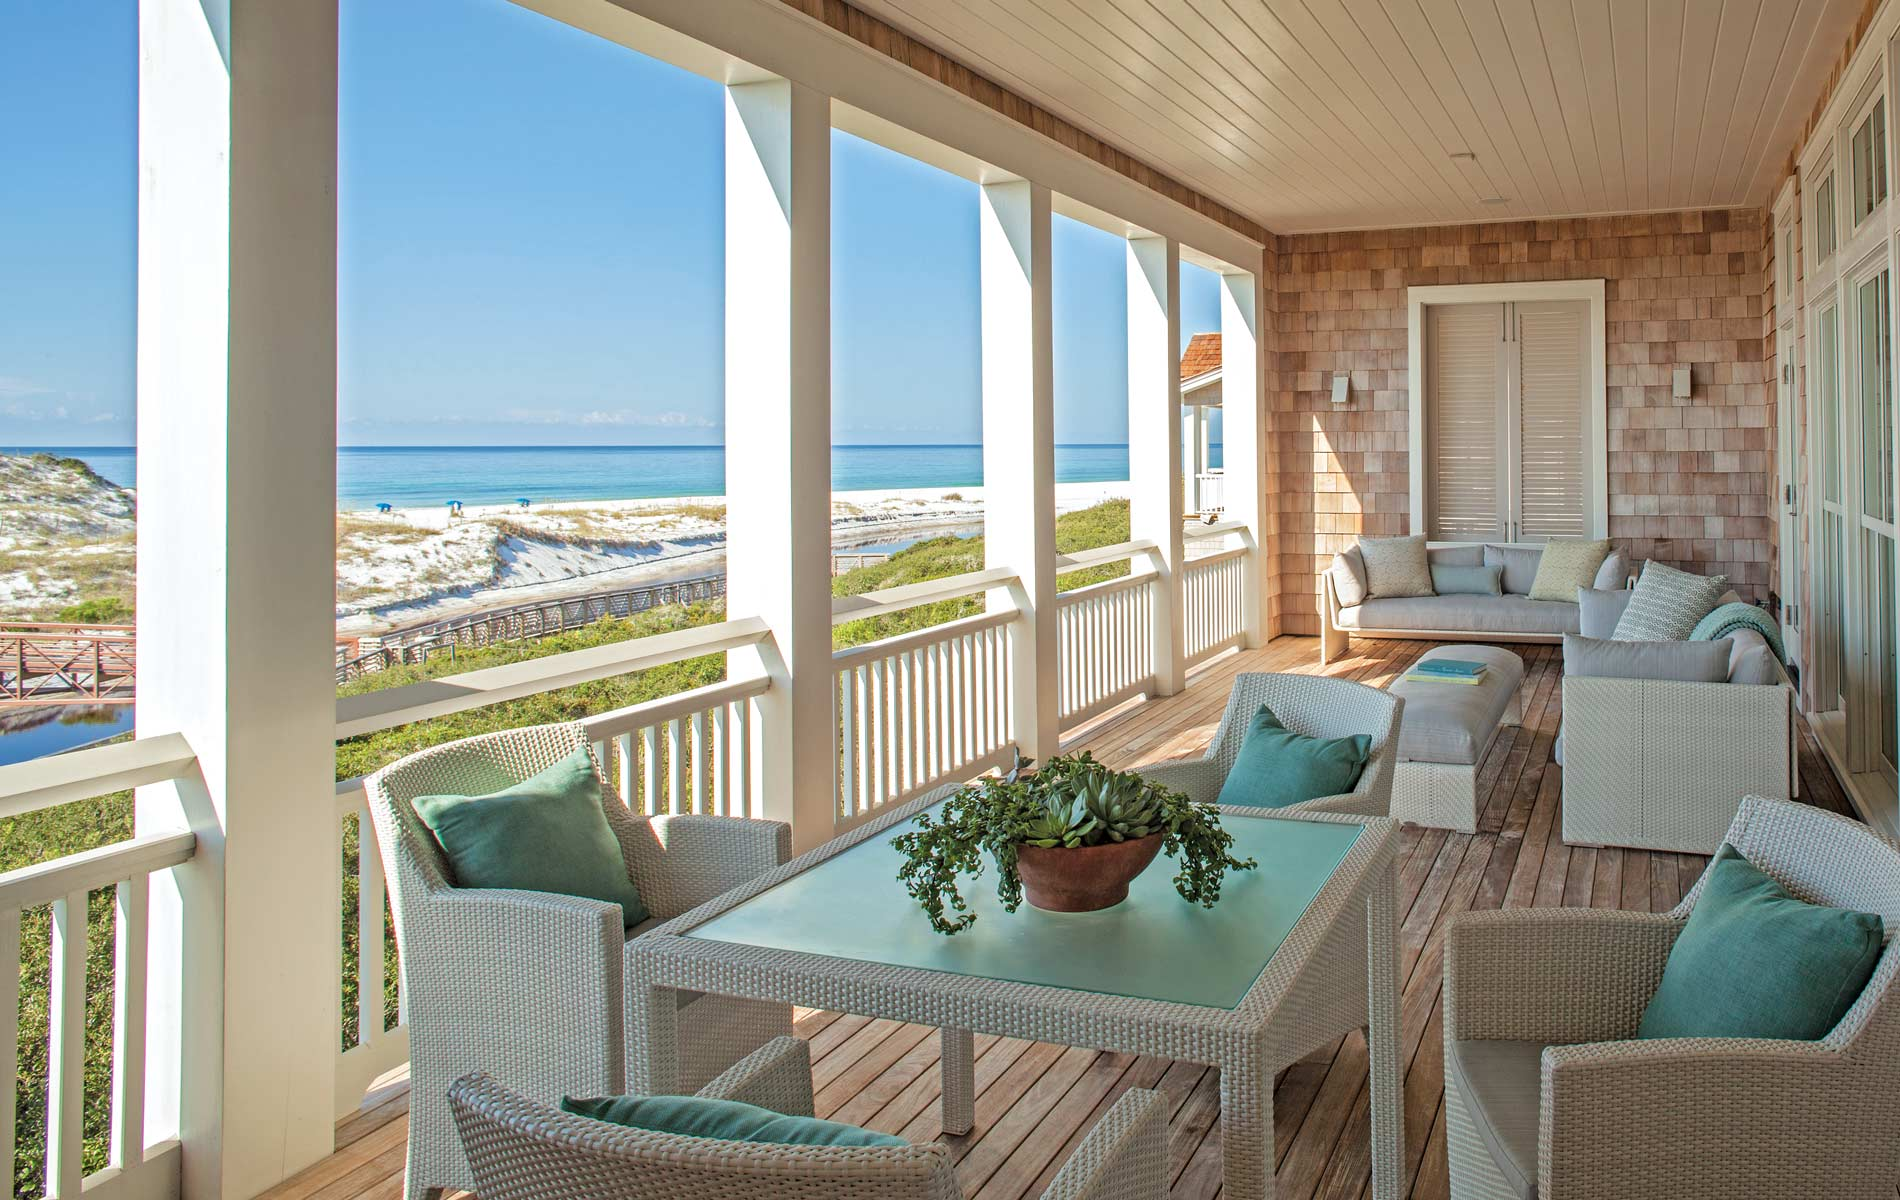 Deck with beach view and chairs